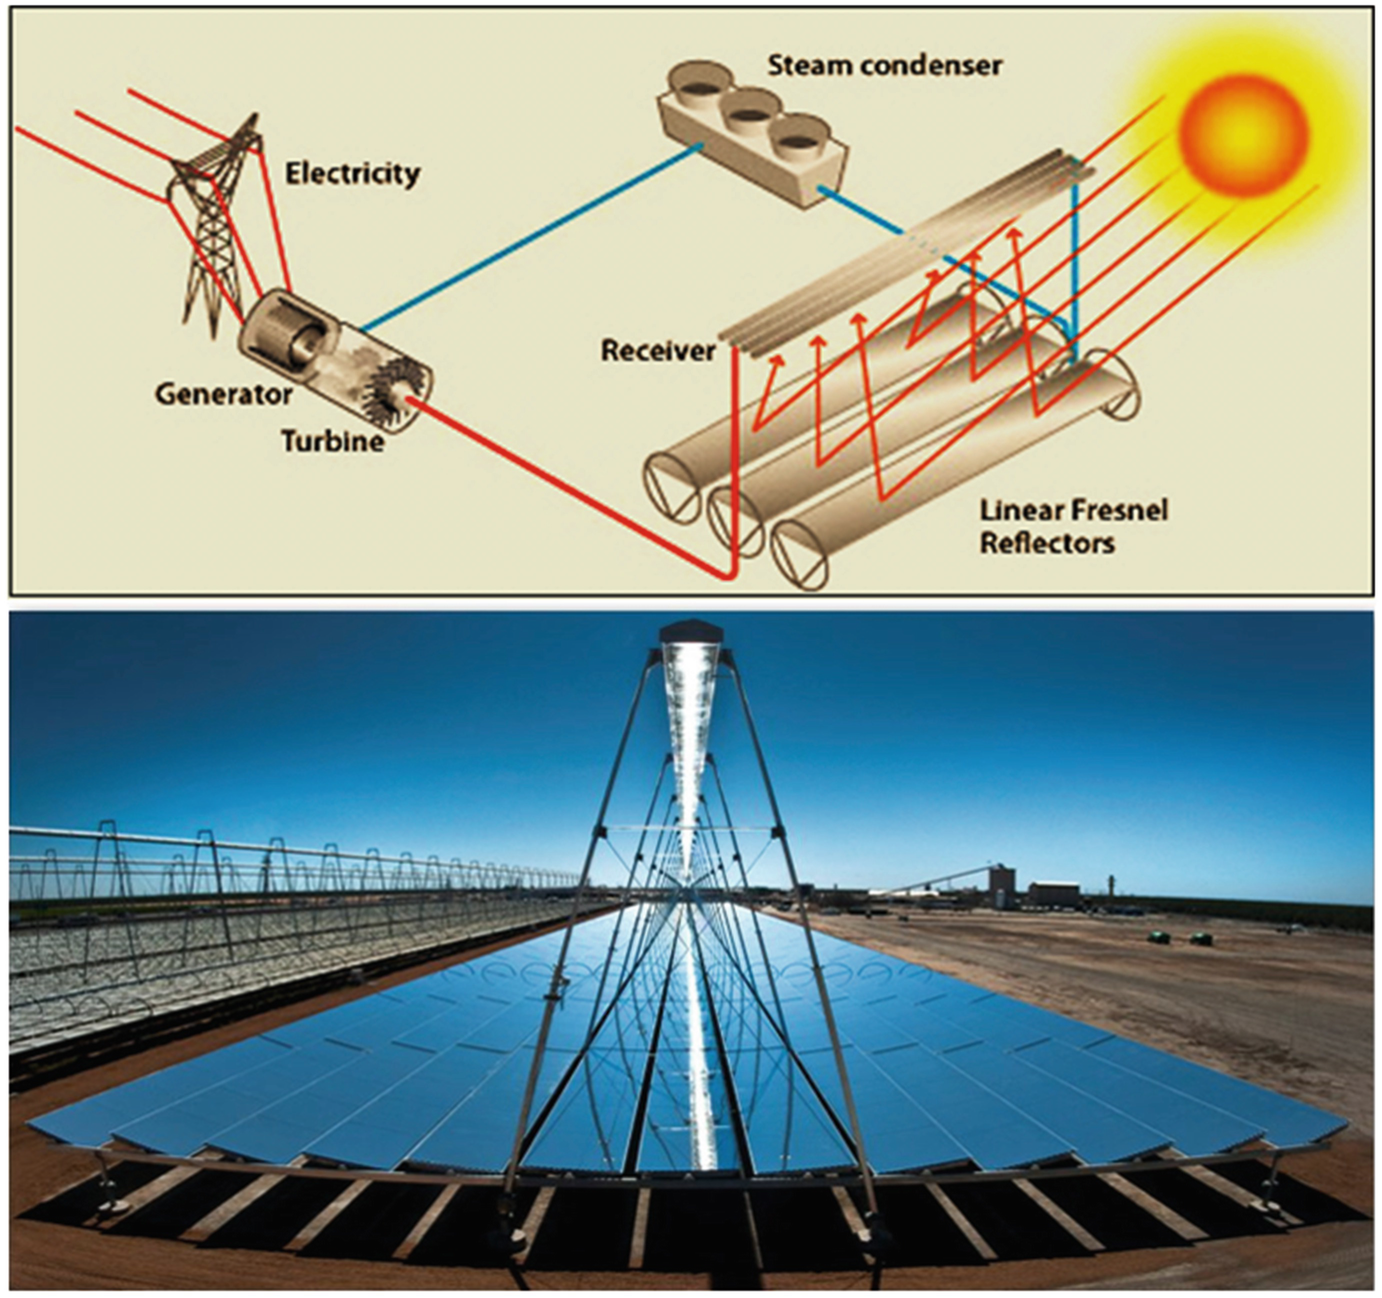 Materials-Based Solutions to Solar Energy System | SpringerLink